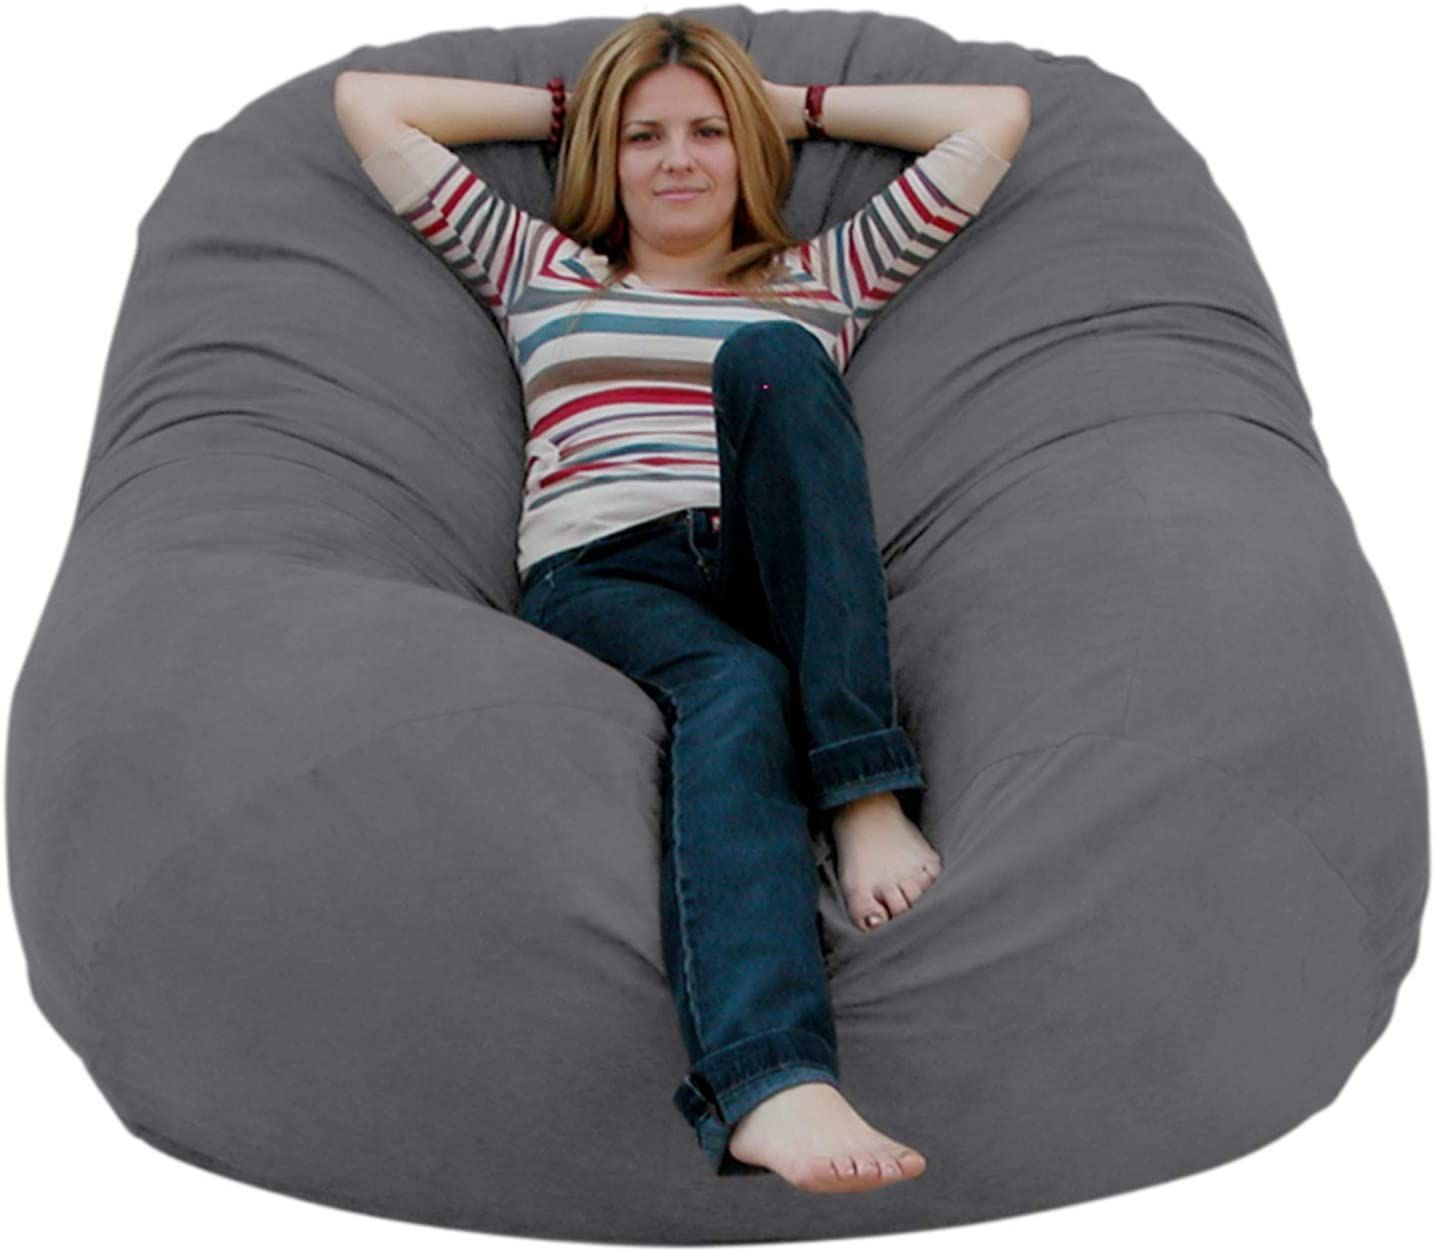 Enhance Your Comfort With These Bean Bag Chairs Amazon Offers Bean Bag Chair Big Bean Bag Chairs Big Bean Bags High quality bean bag chairs